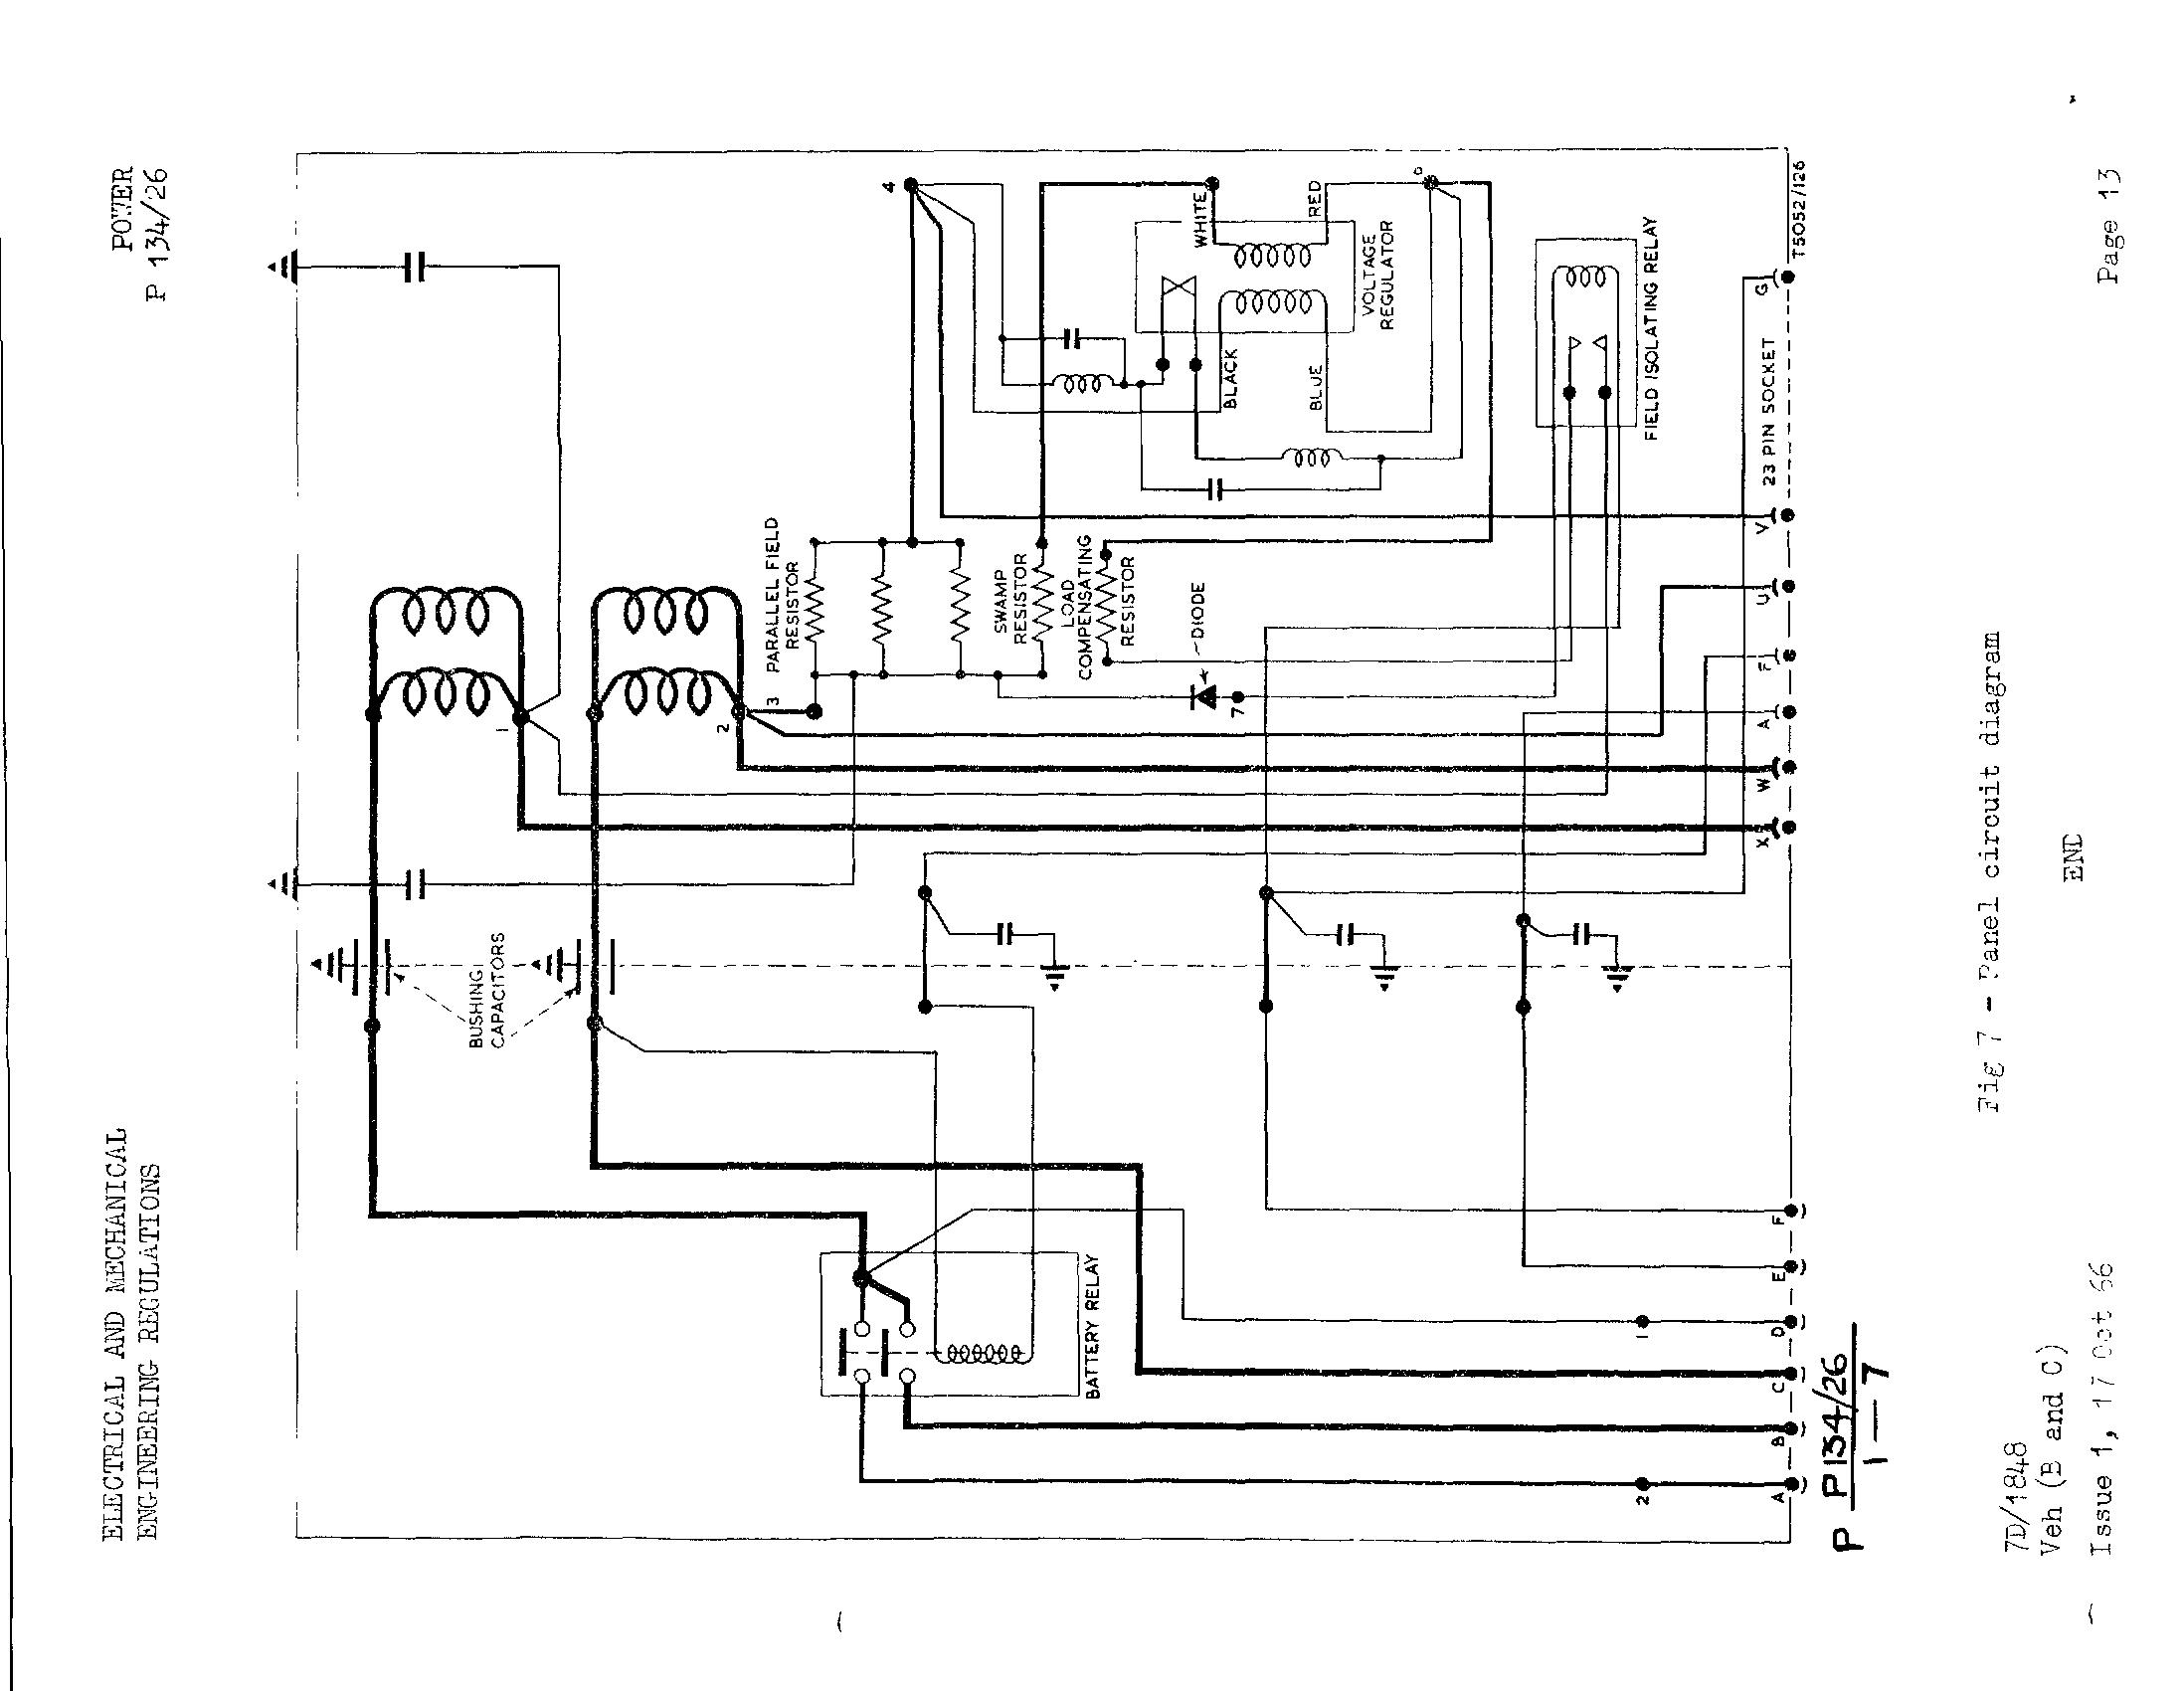 10000 Inverter Wiring Diagram Land Rovers Military Specifics